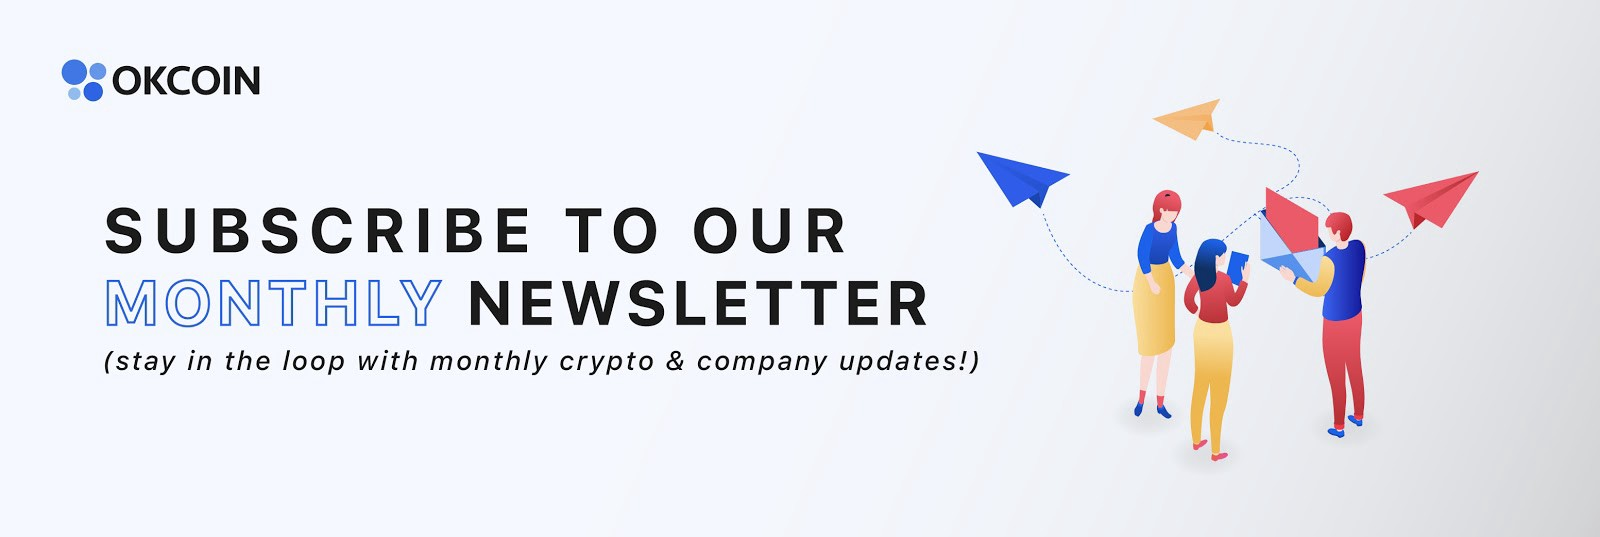 Sign-up for OKCoin's Newsletter -Crypto News Roundup